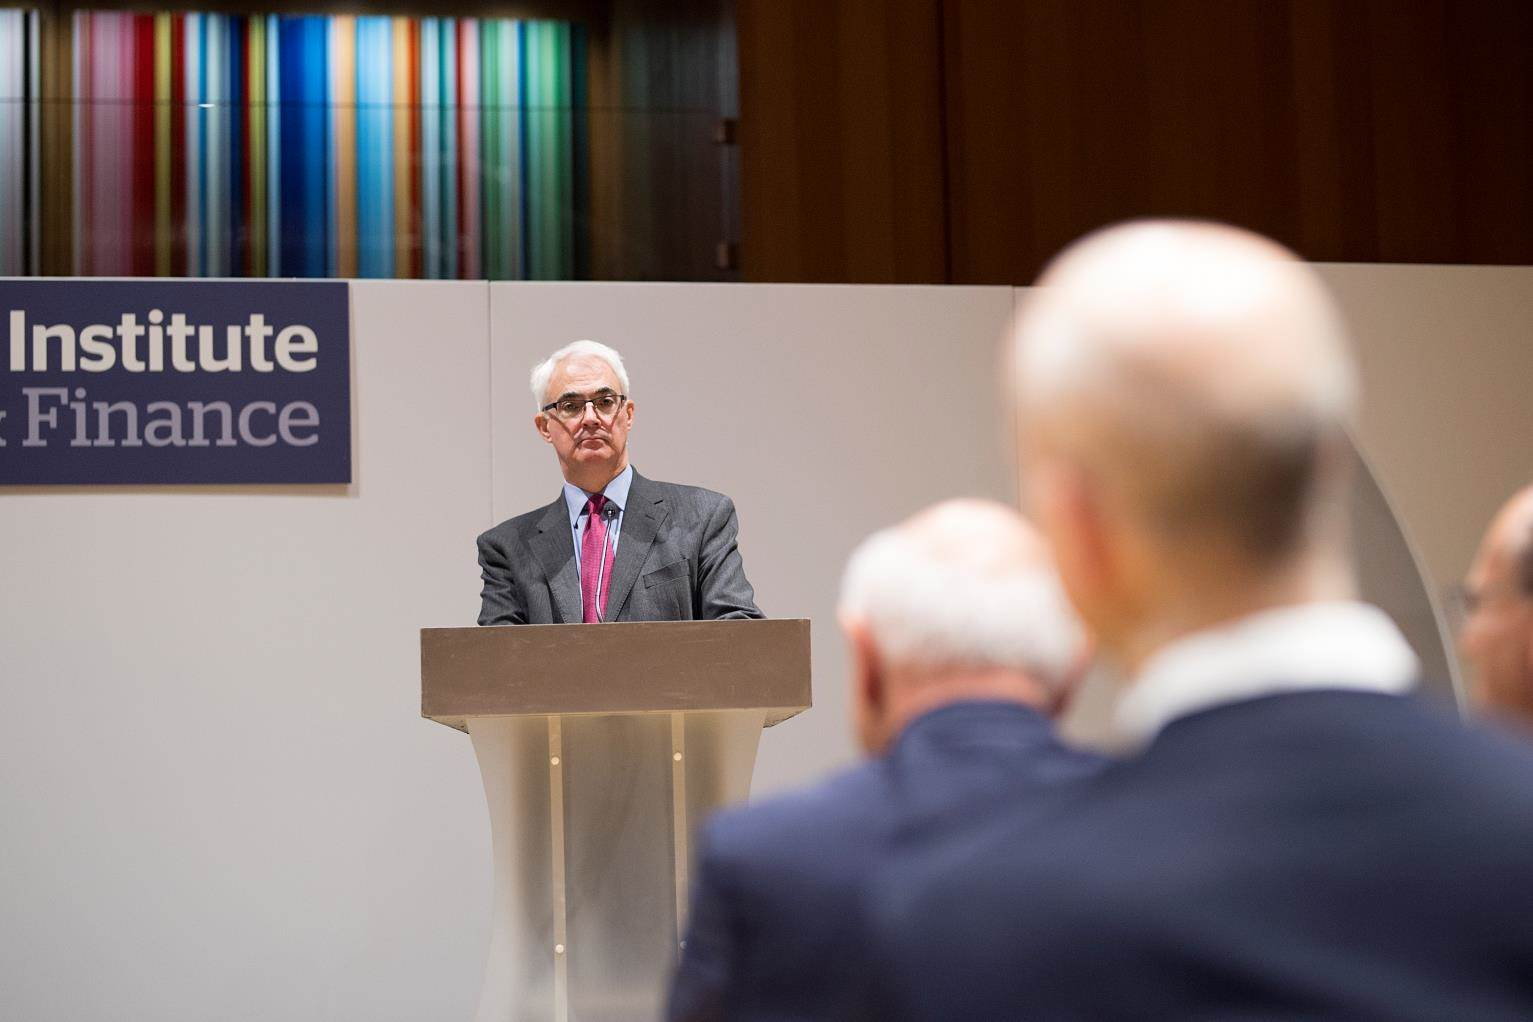 Rt Hon. Lord Alistair Darling speaks at the 2017 Henry Grunfeld Lecture